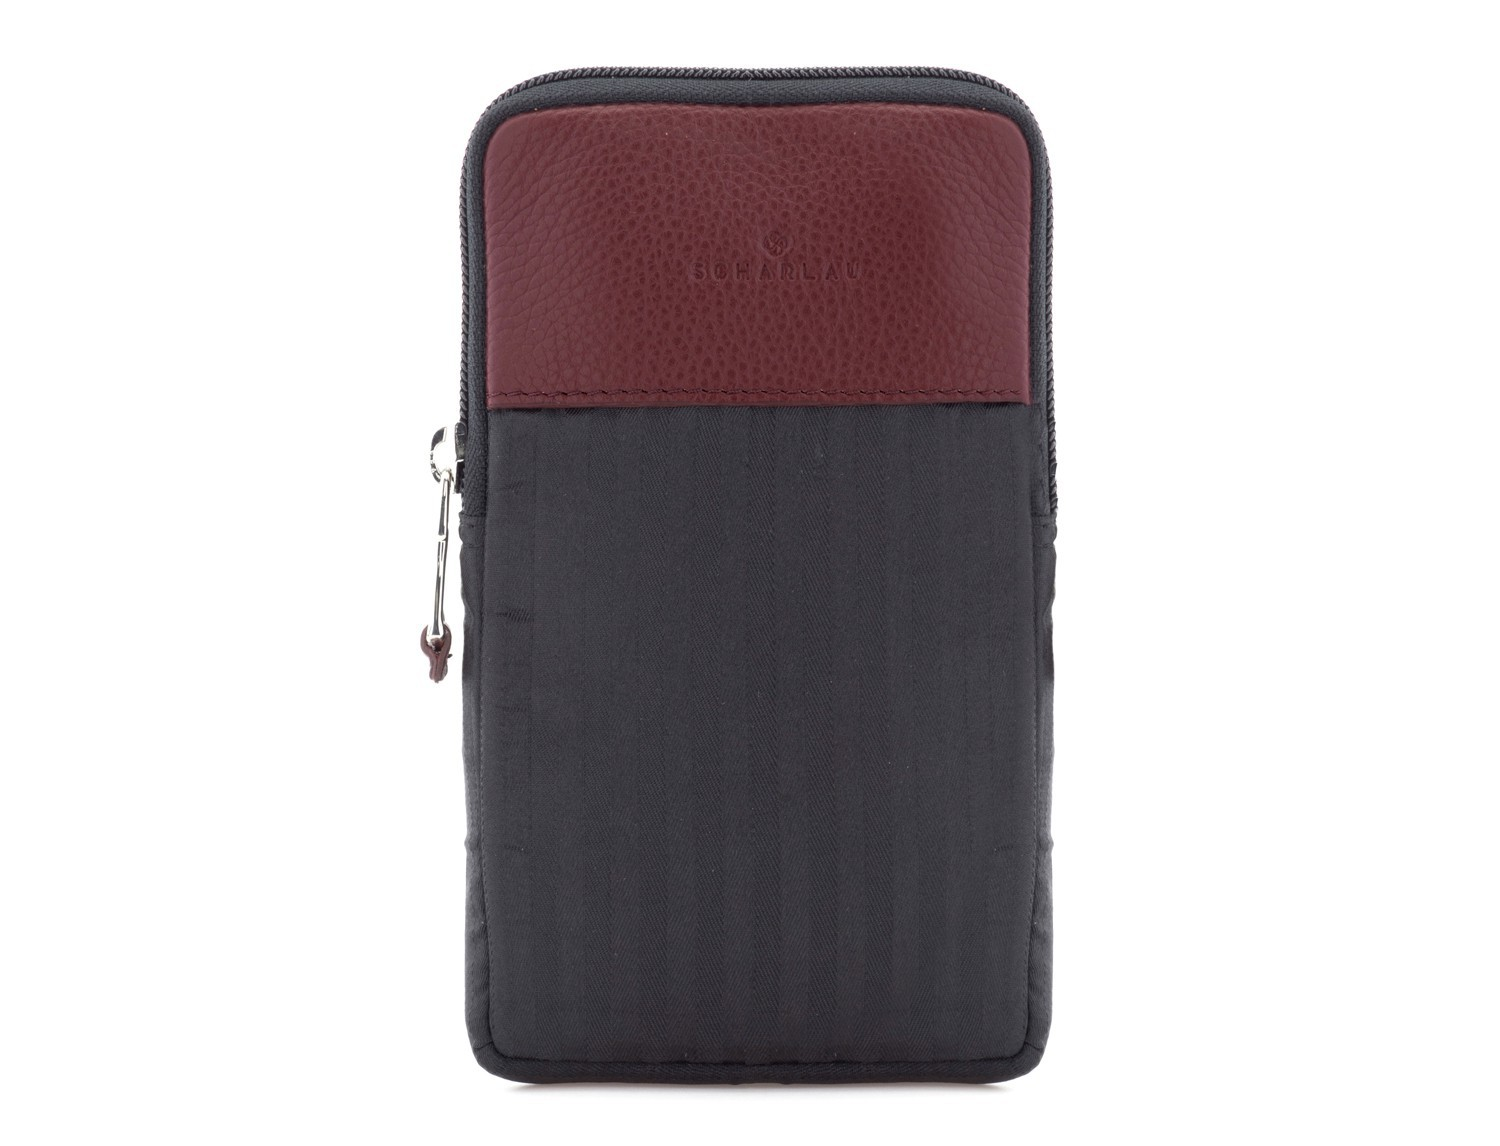 Multipurpose pouch in burgundy front